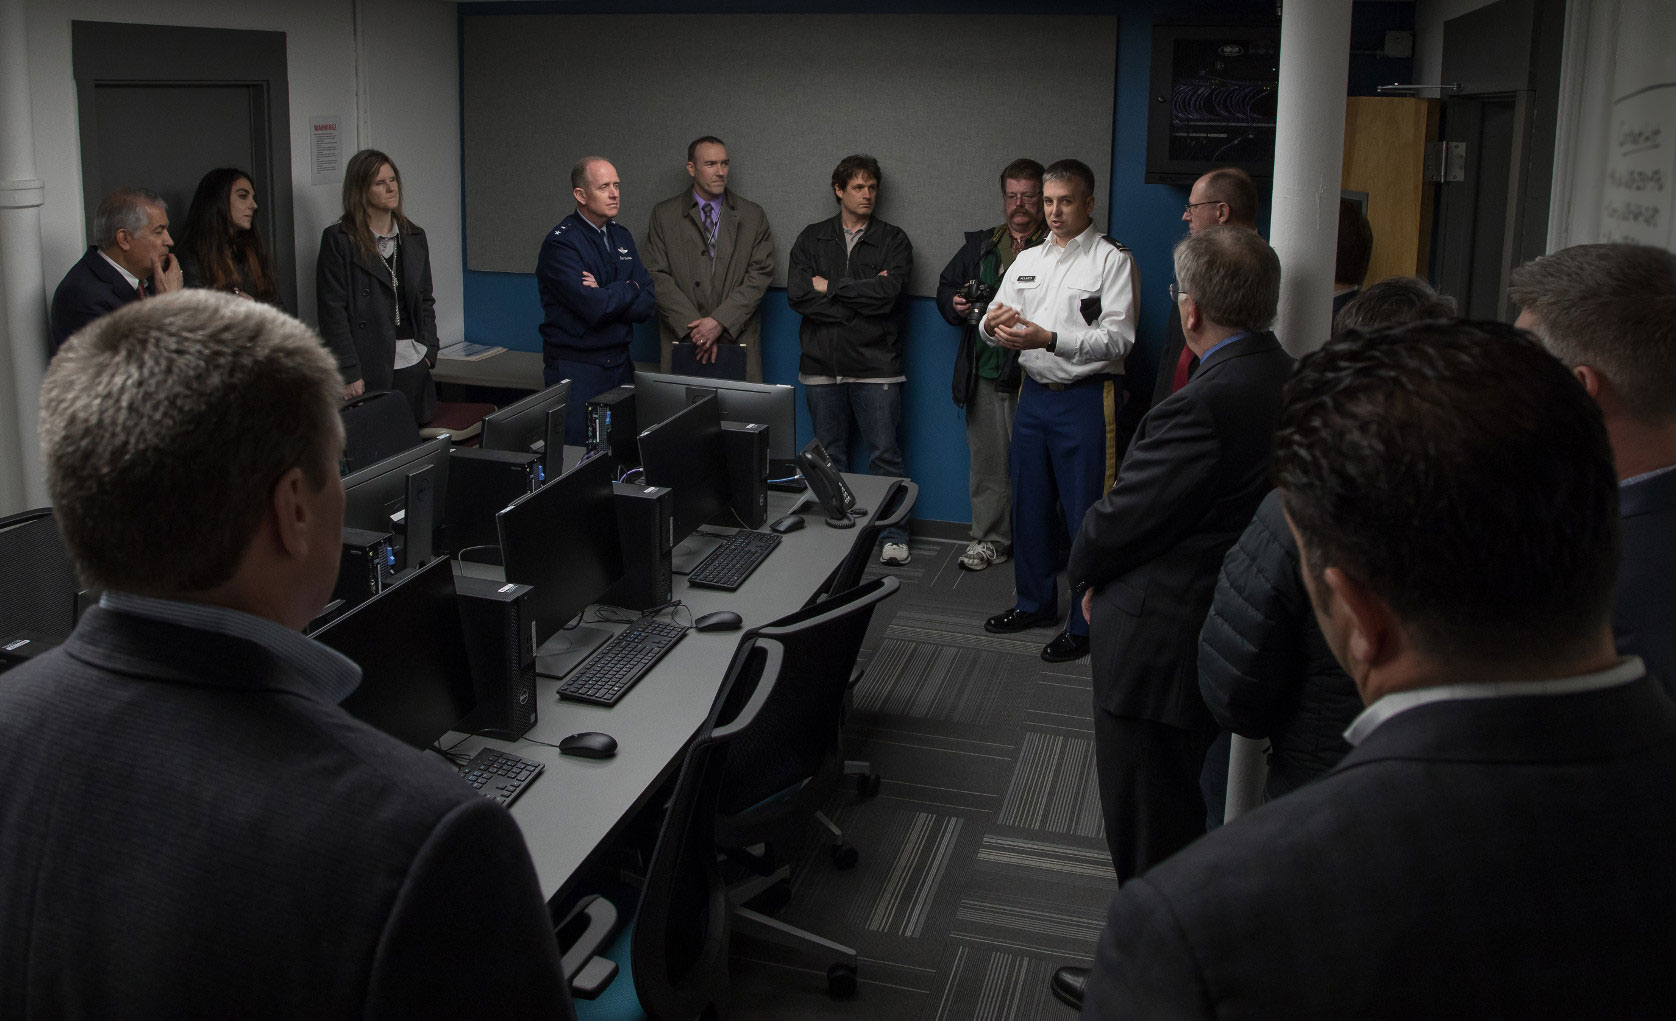 Partners in the Dark Sky exercise toured MGE's Cyber Range, a virtual environment that served as one